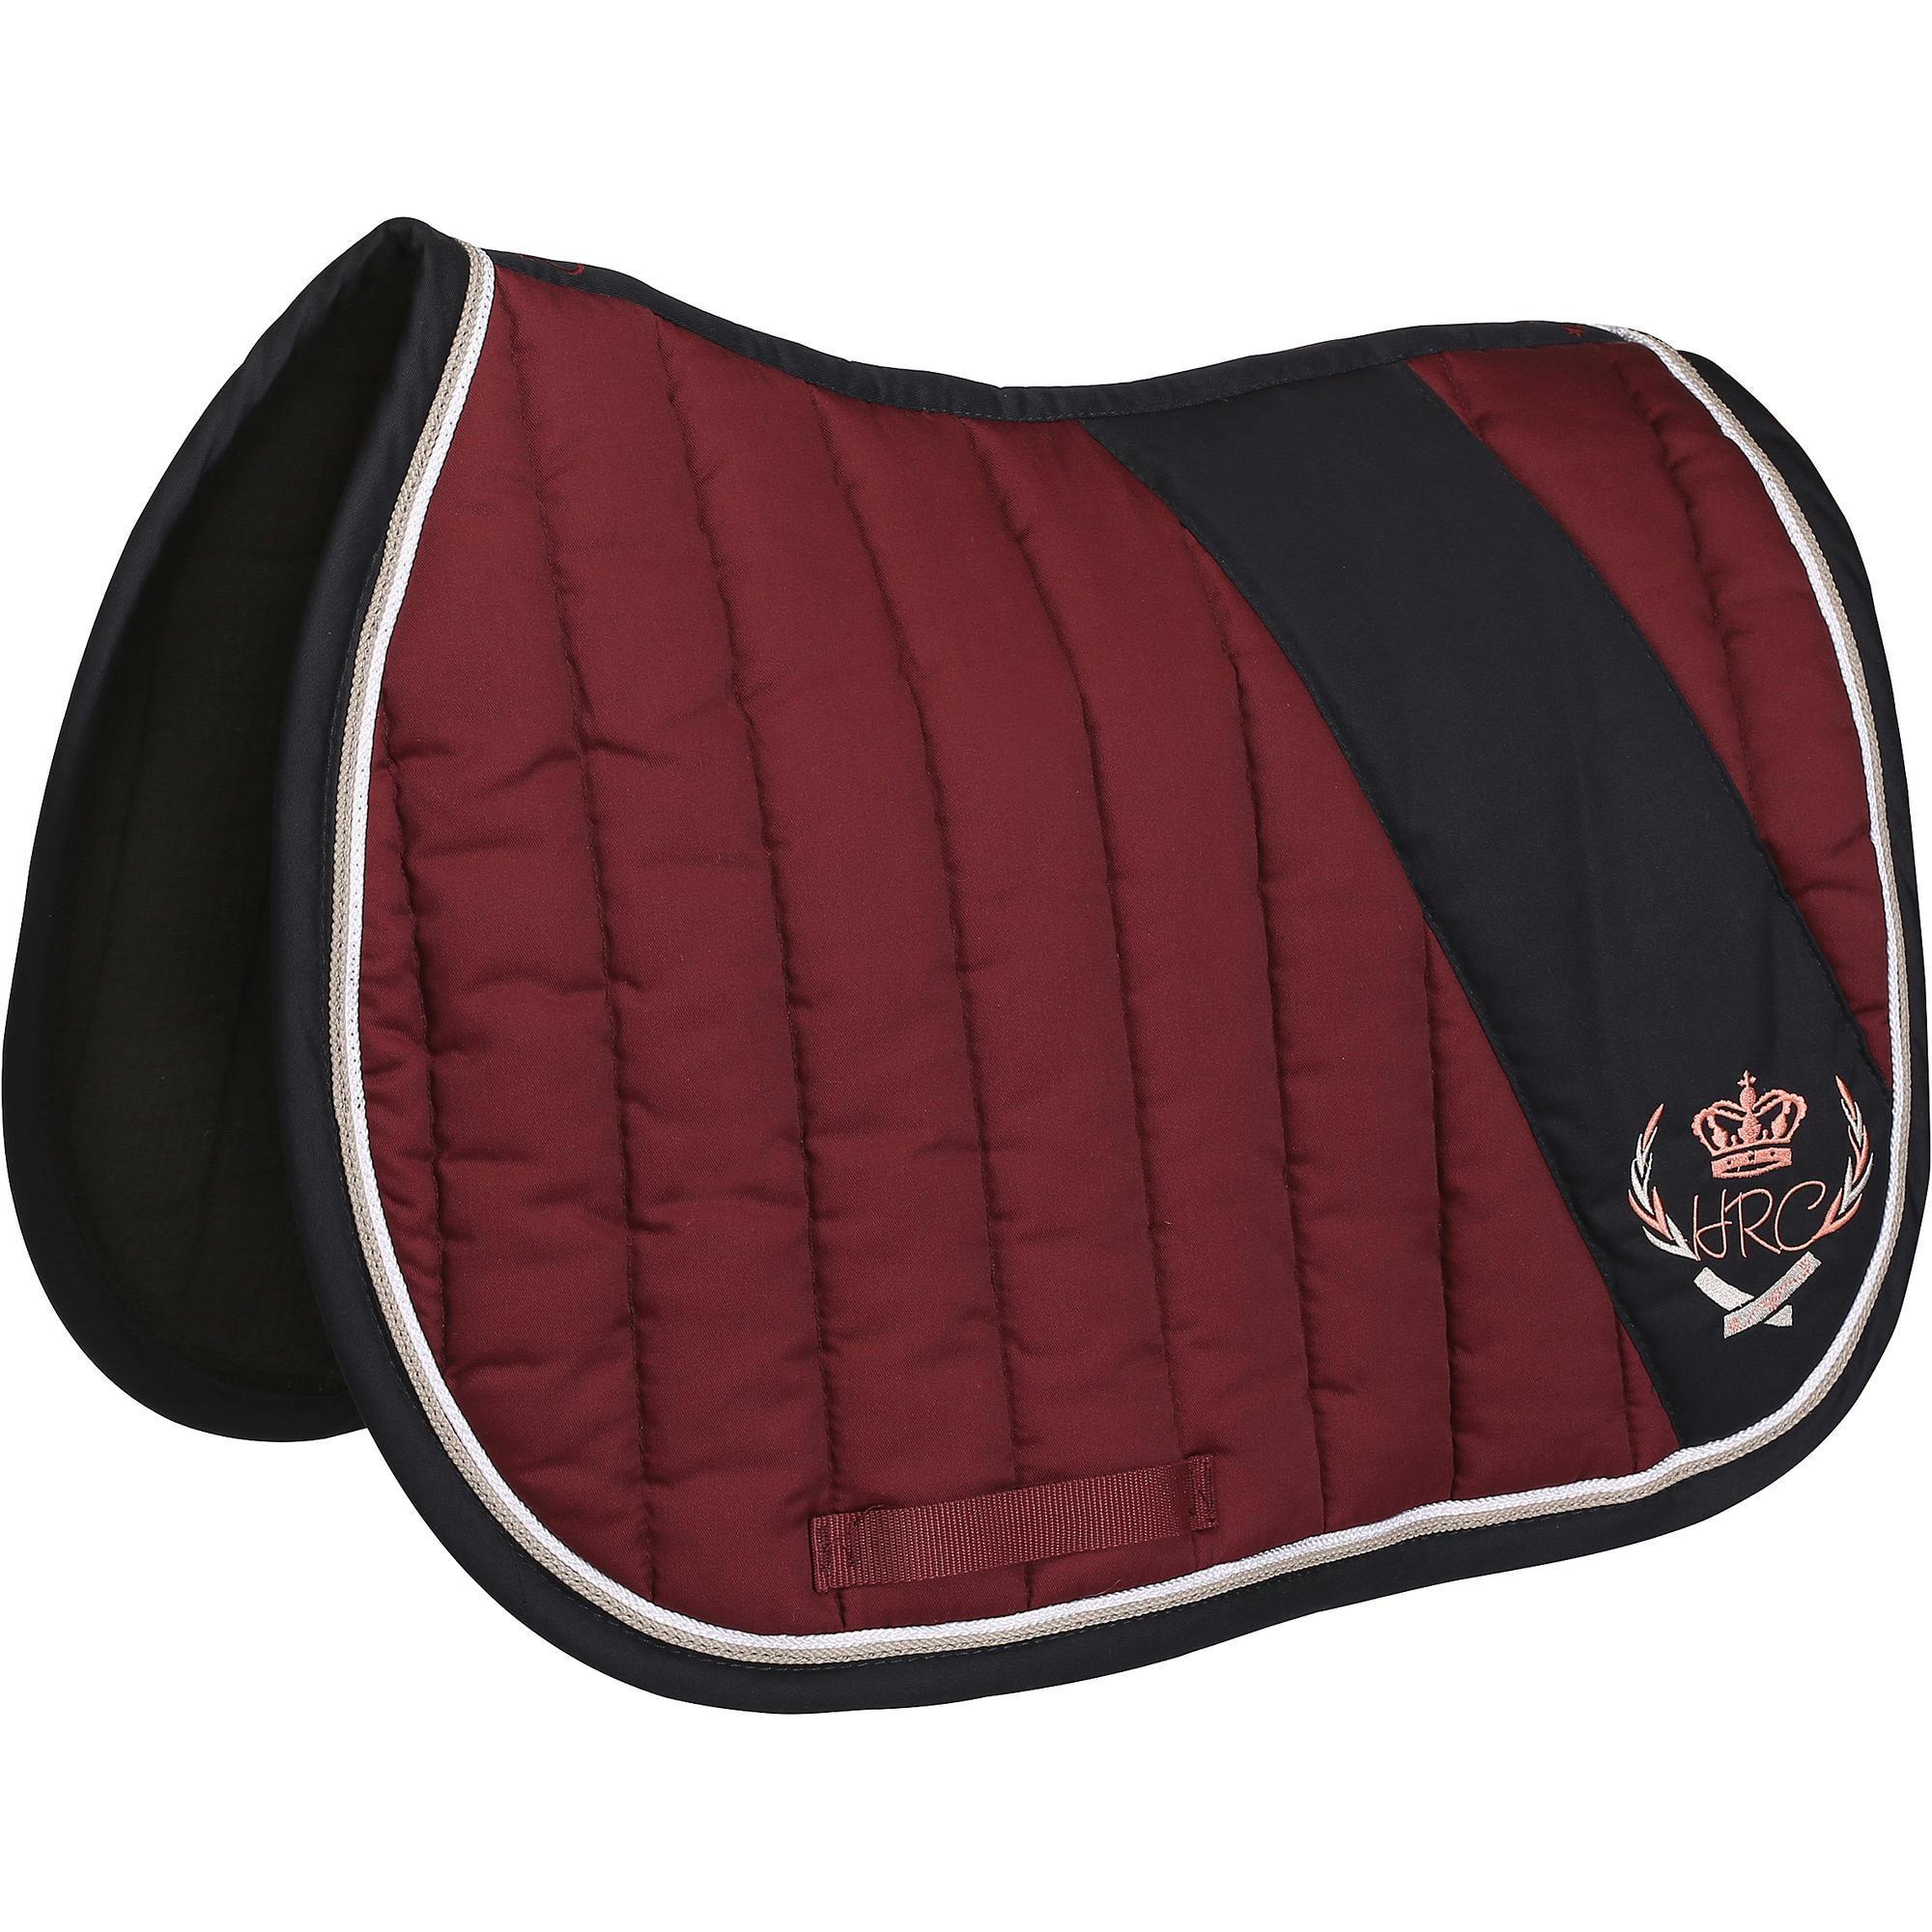 Tapis de selle quitation jump bordeaux taille cheval fouganza Tapis cheval decathlon